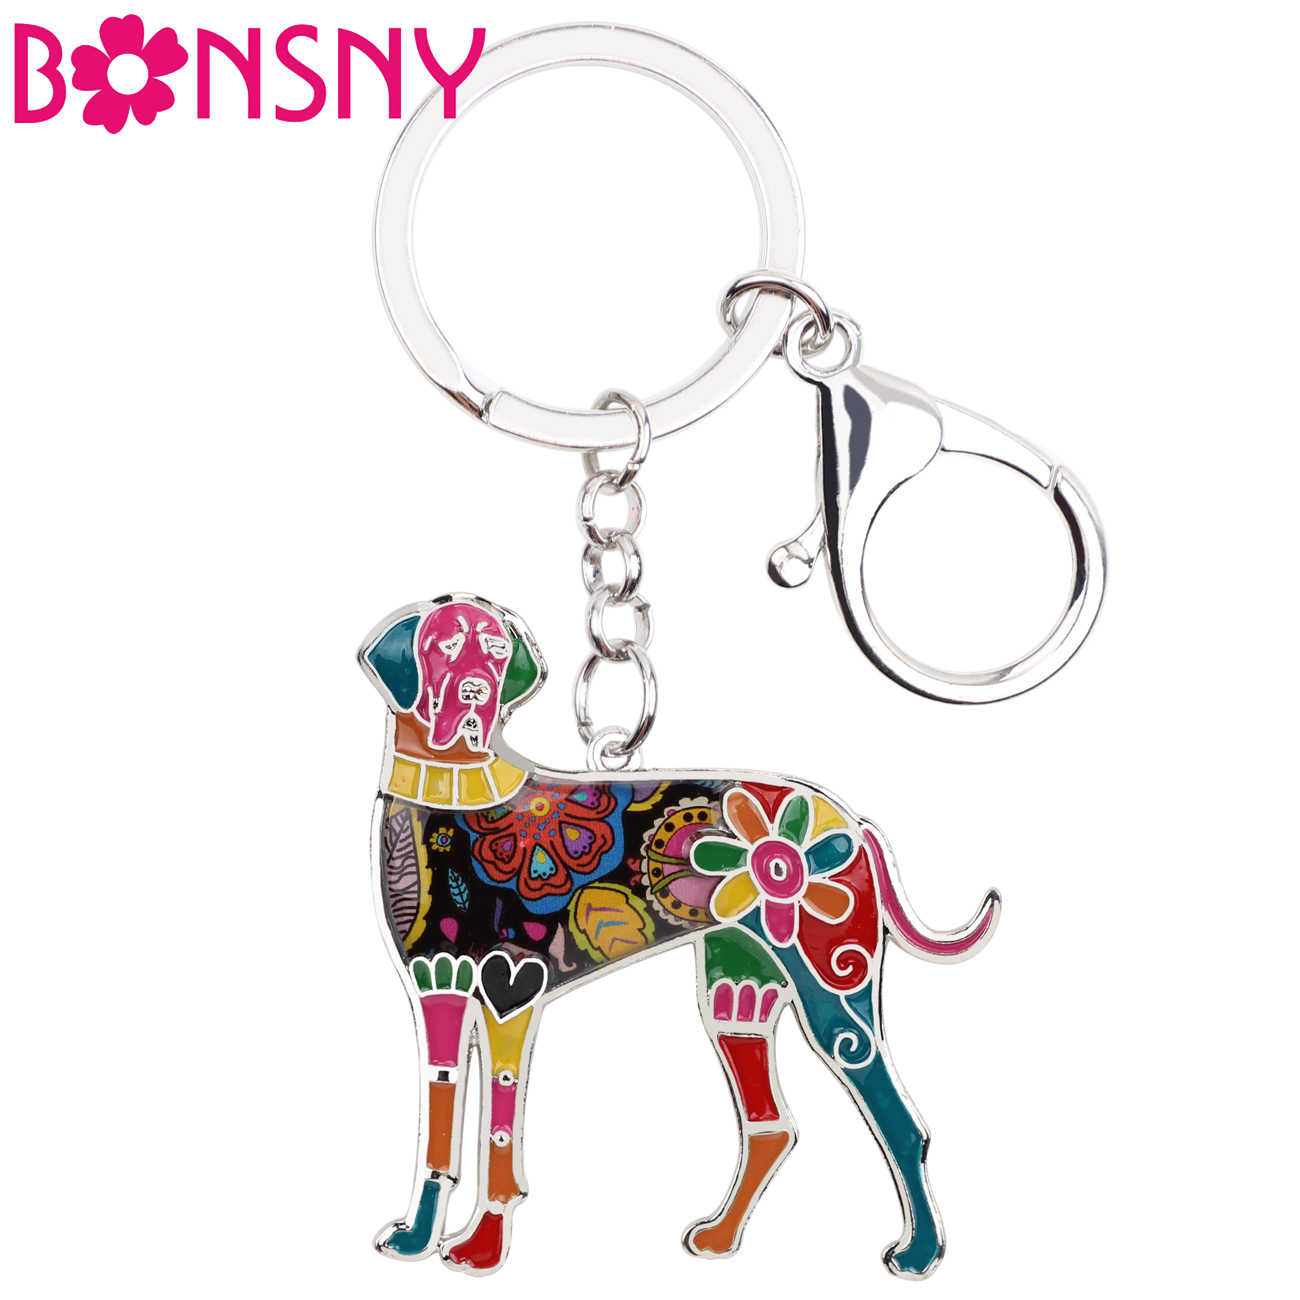 Bonsny emalia Alloy Great Dane Dog breloki breloki brelok do torebki wisiorki do samochodu modna biżuteria dla zwierząt dla kobiet dziewczyna dla miłośników zwierząt prezent